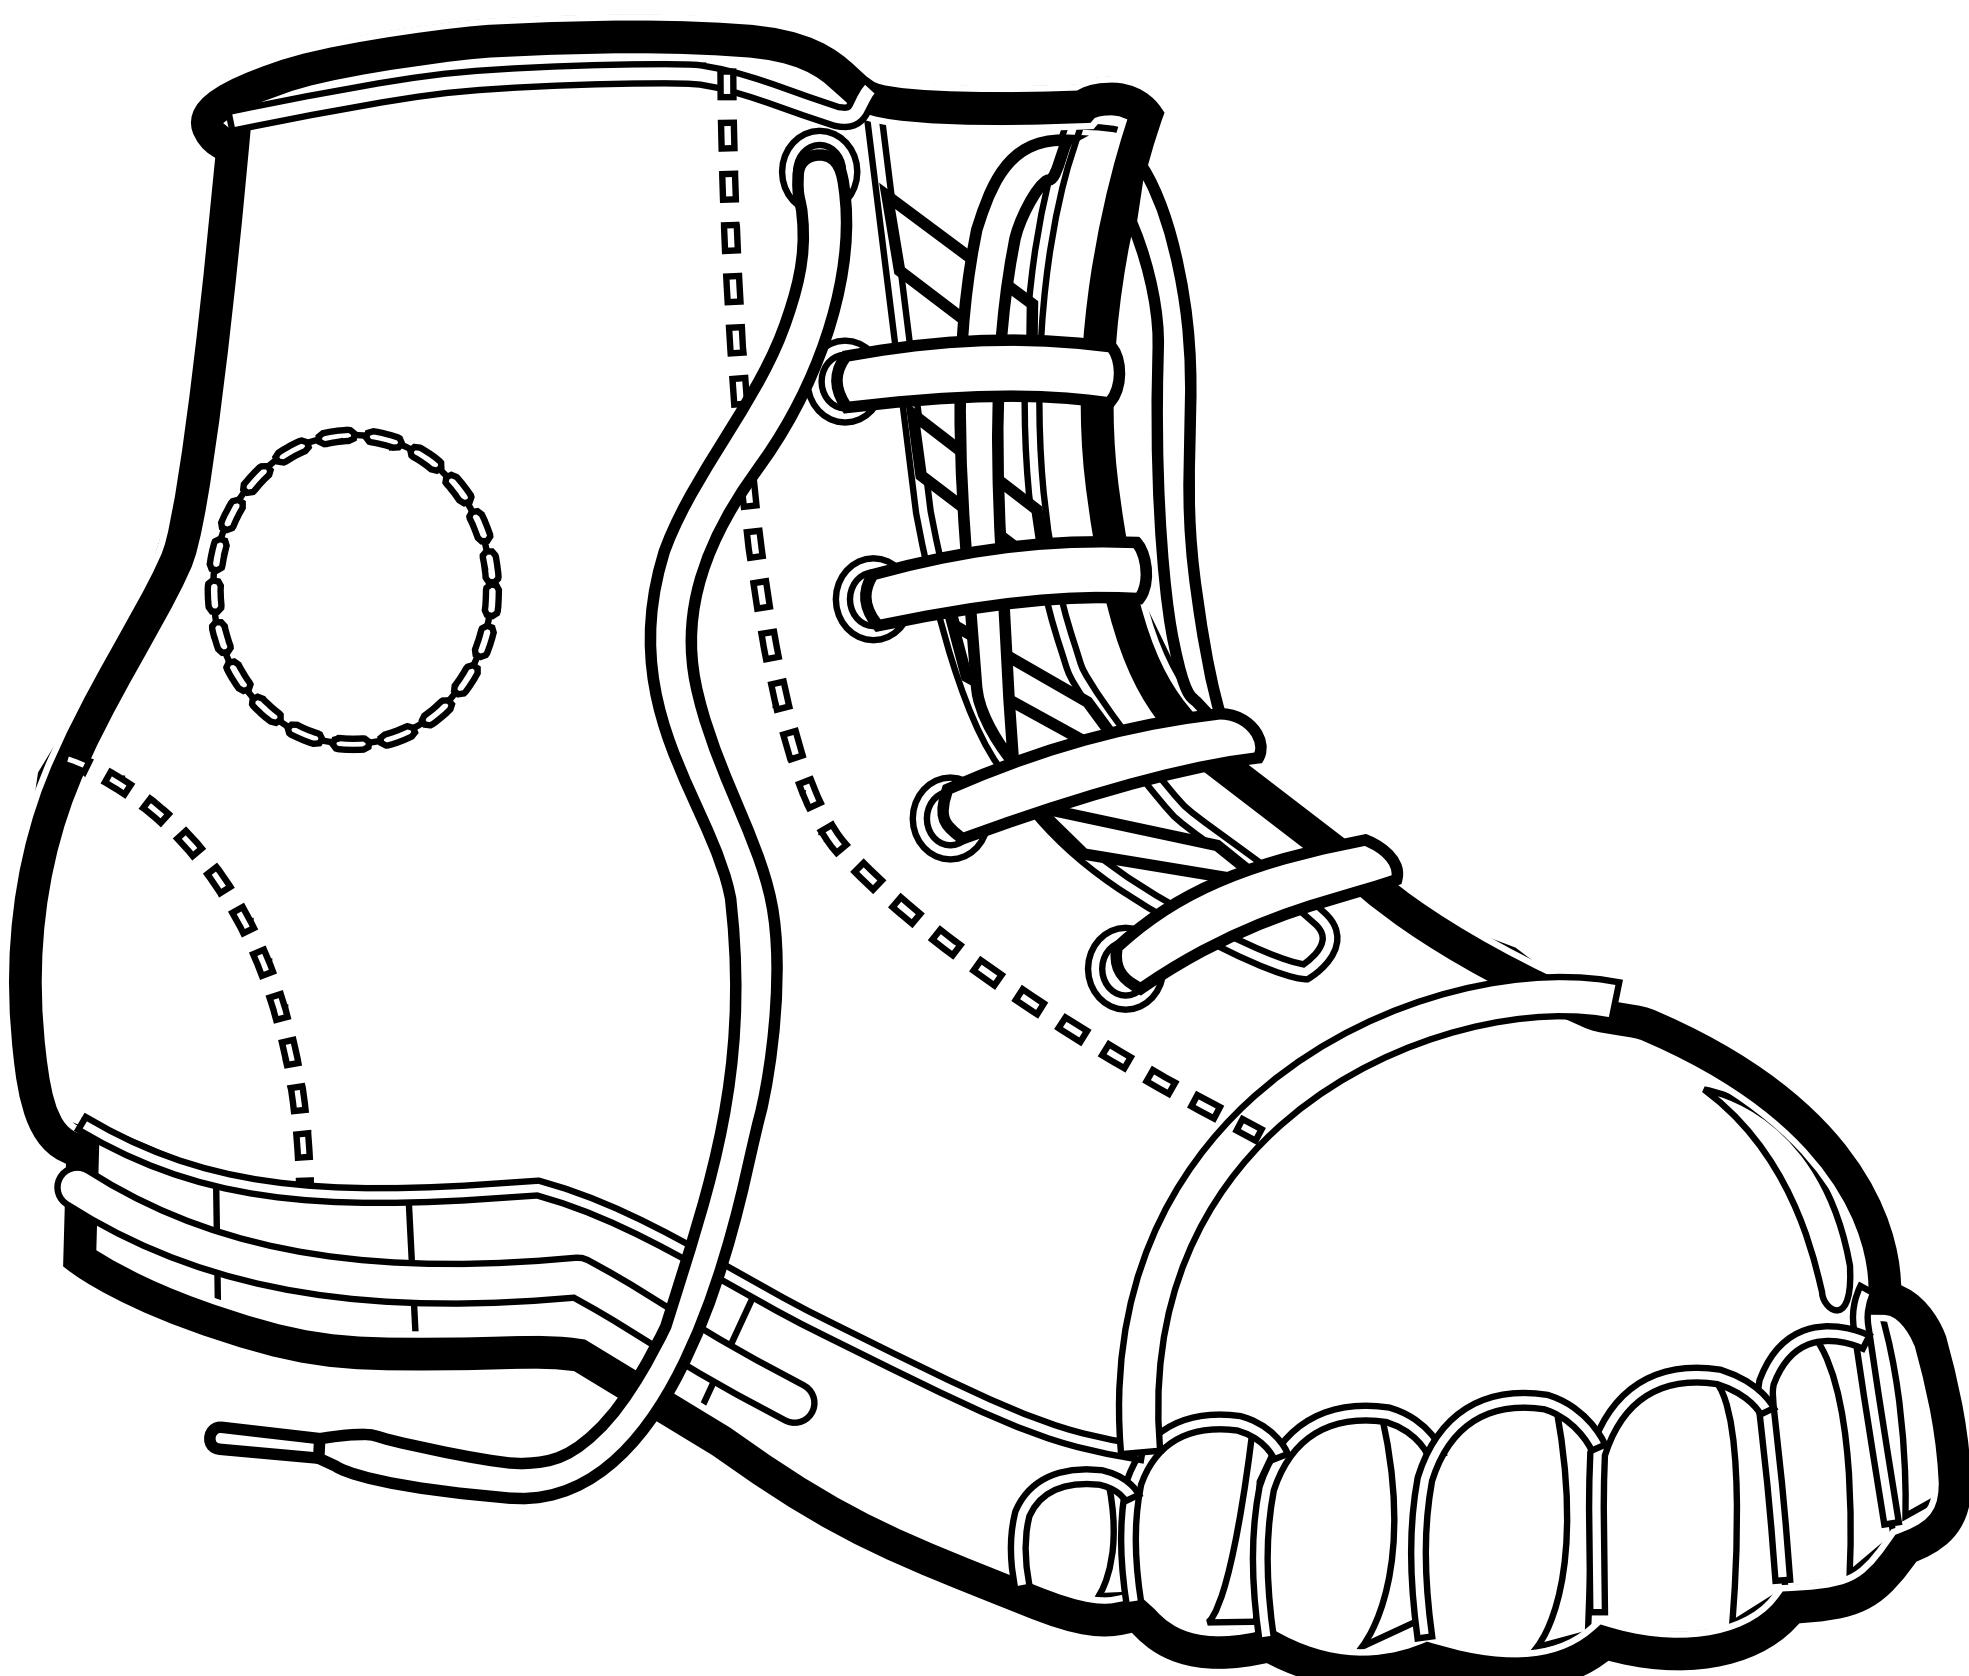 Rain boots black and. Converse clipart shoesclip